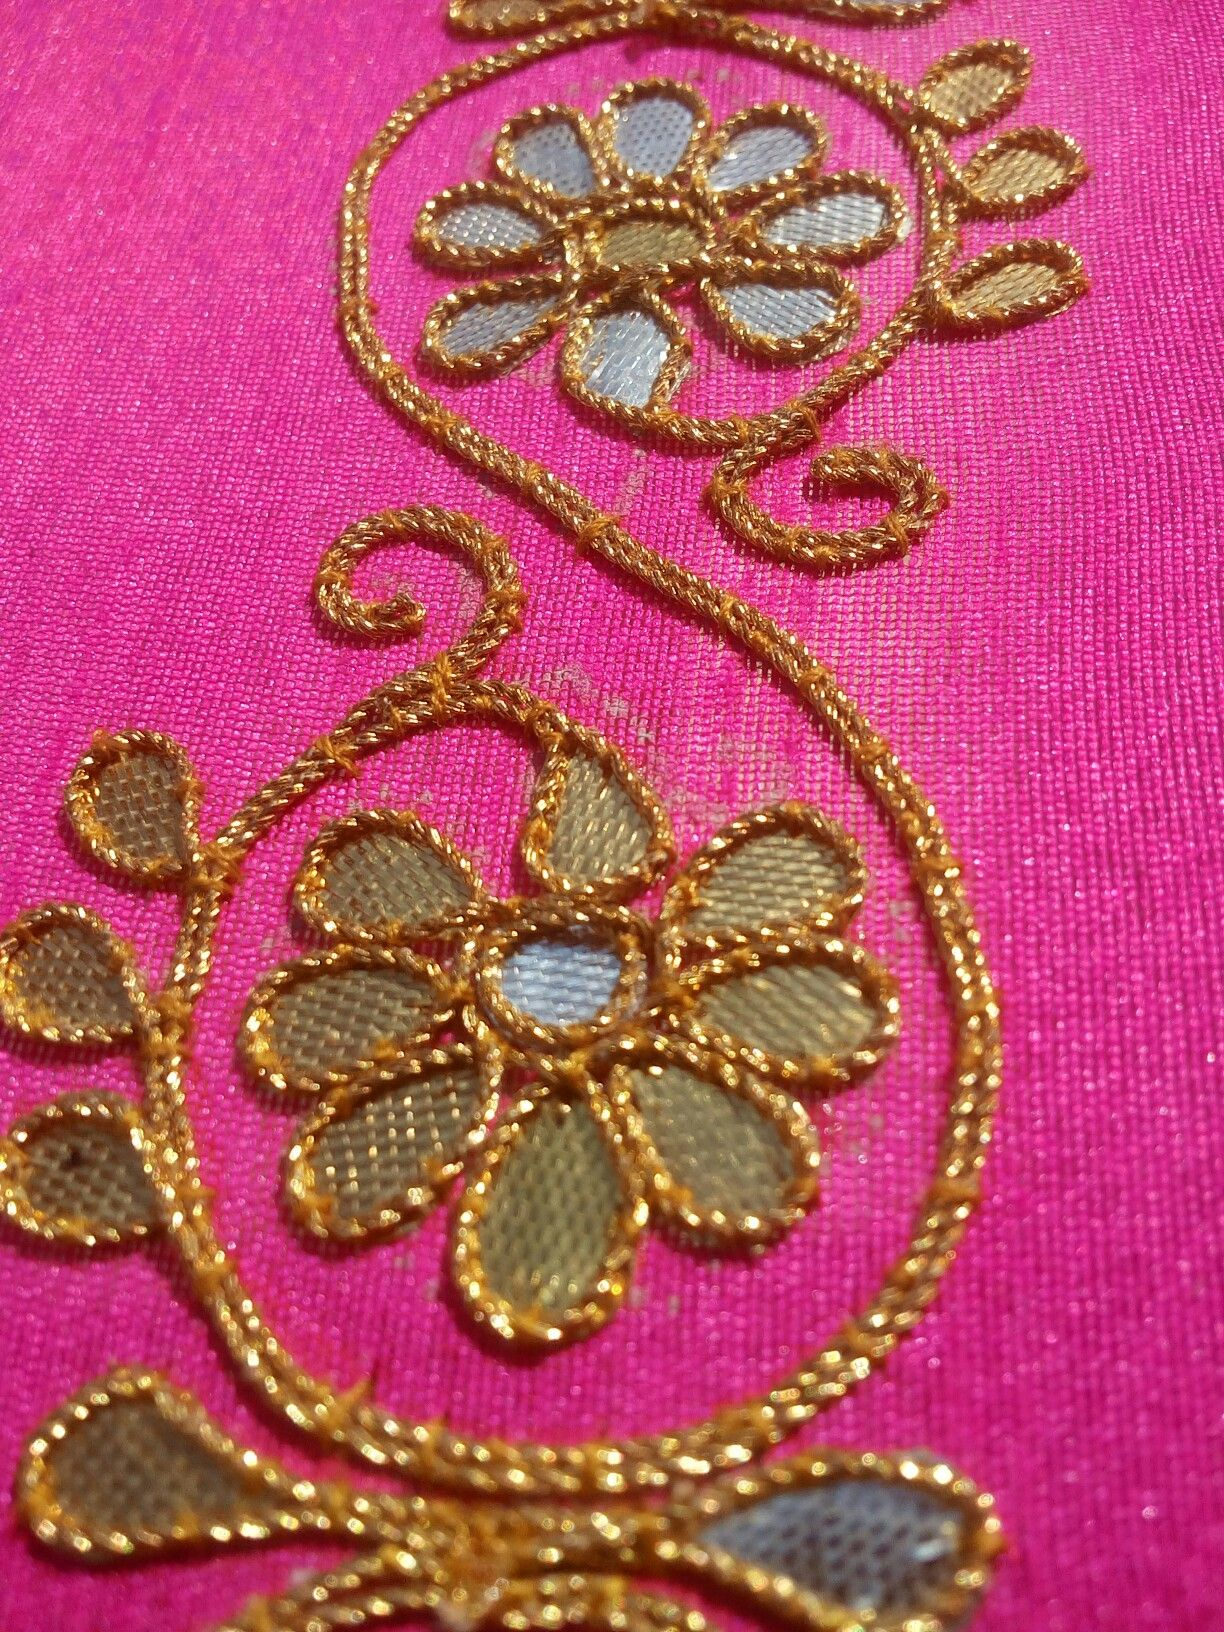 Gota Patti Work | Gota Patti Work | Pinterest | Embroidery Blouse Designs And Indian Fashion